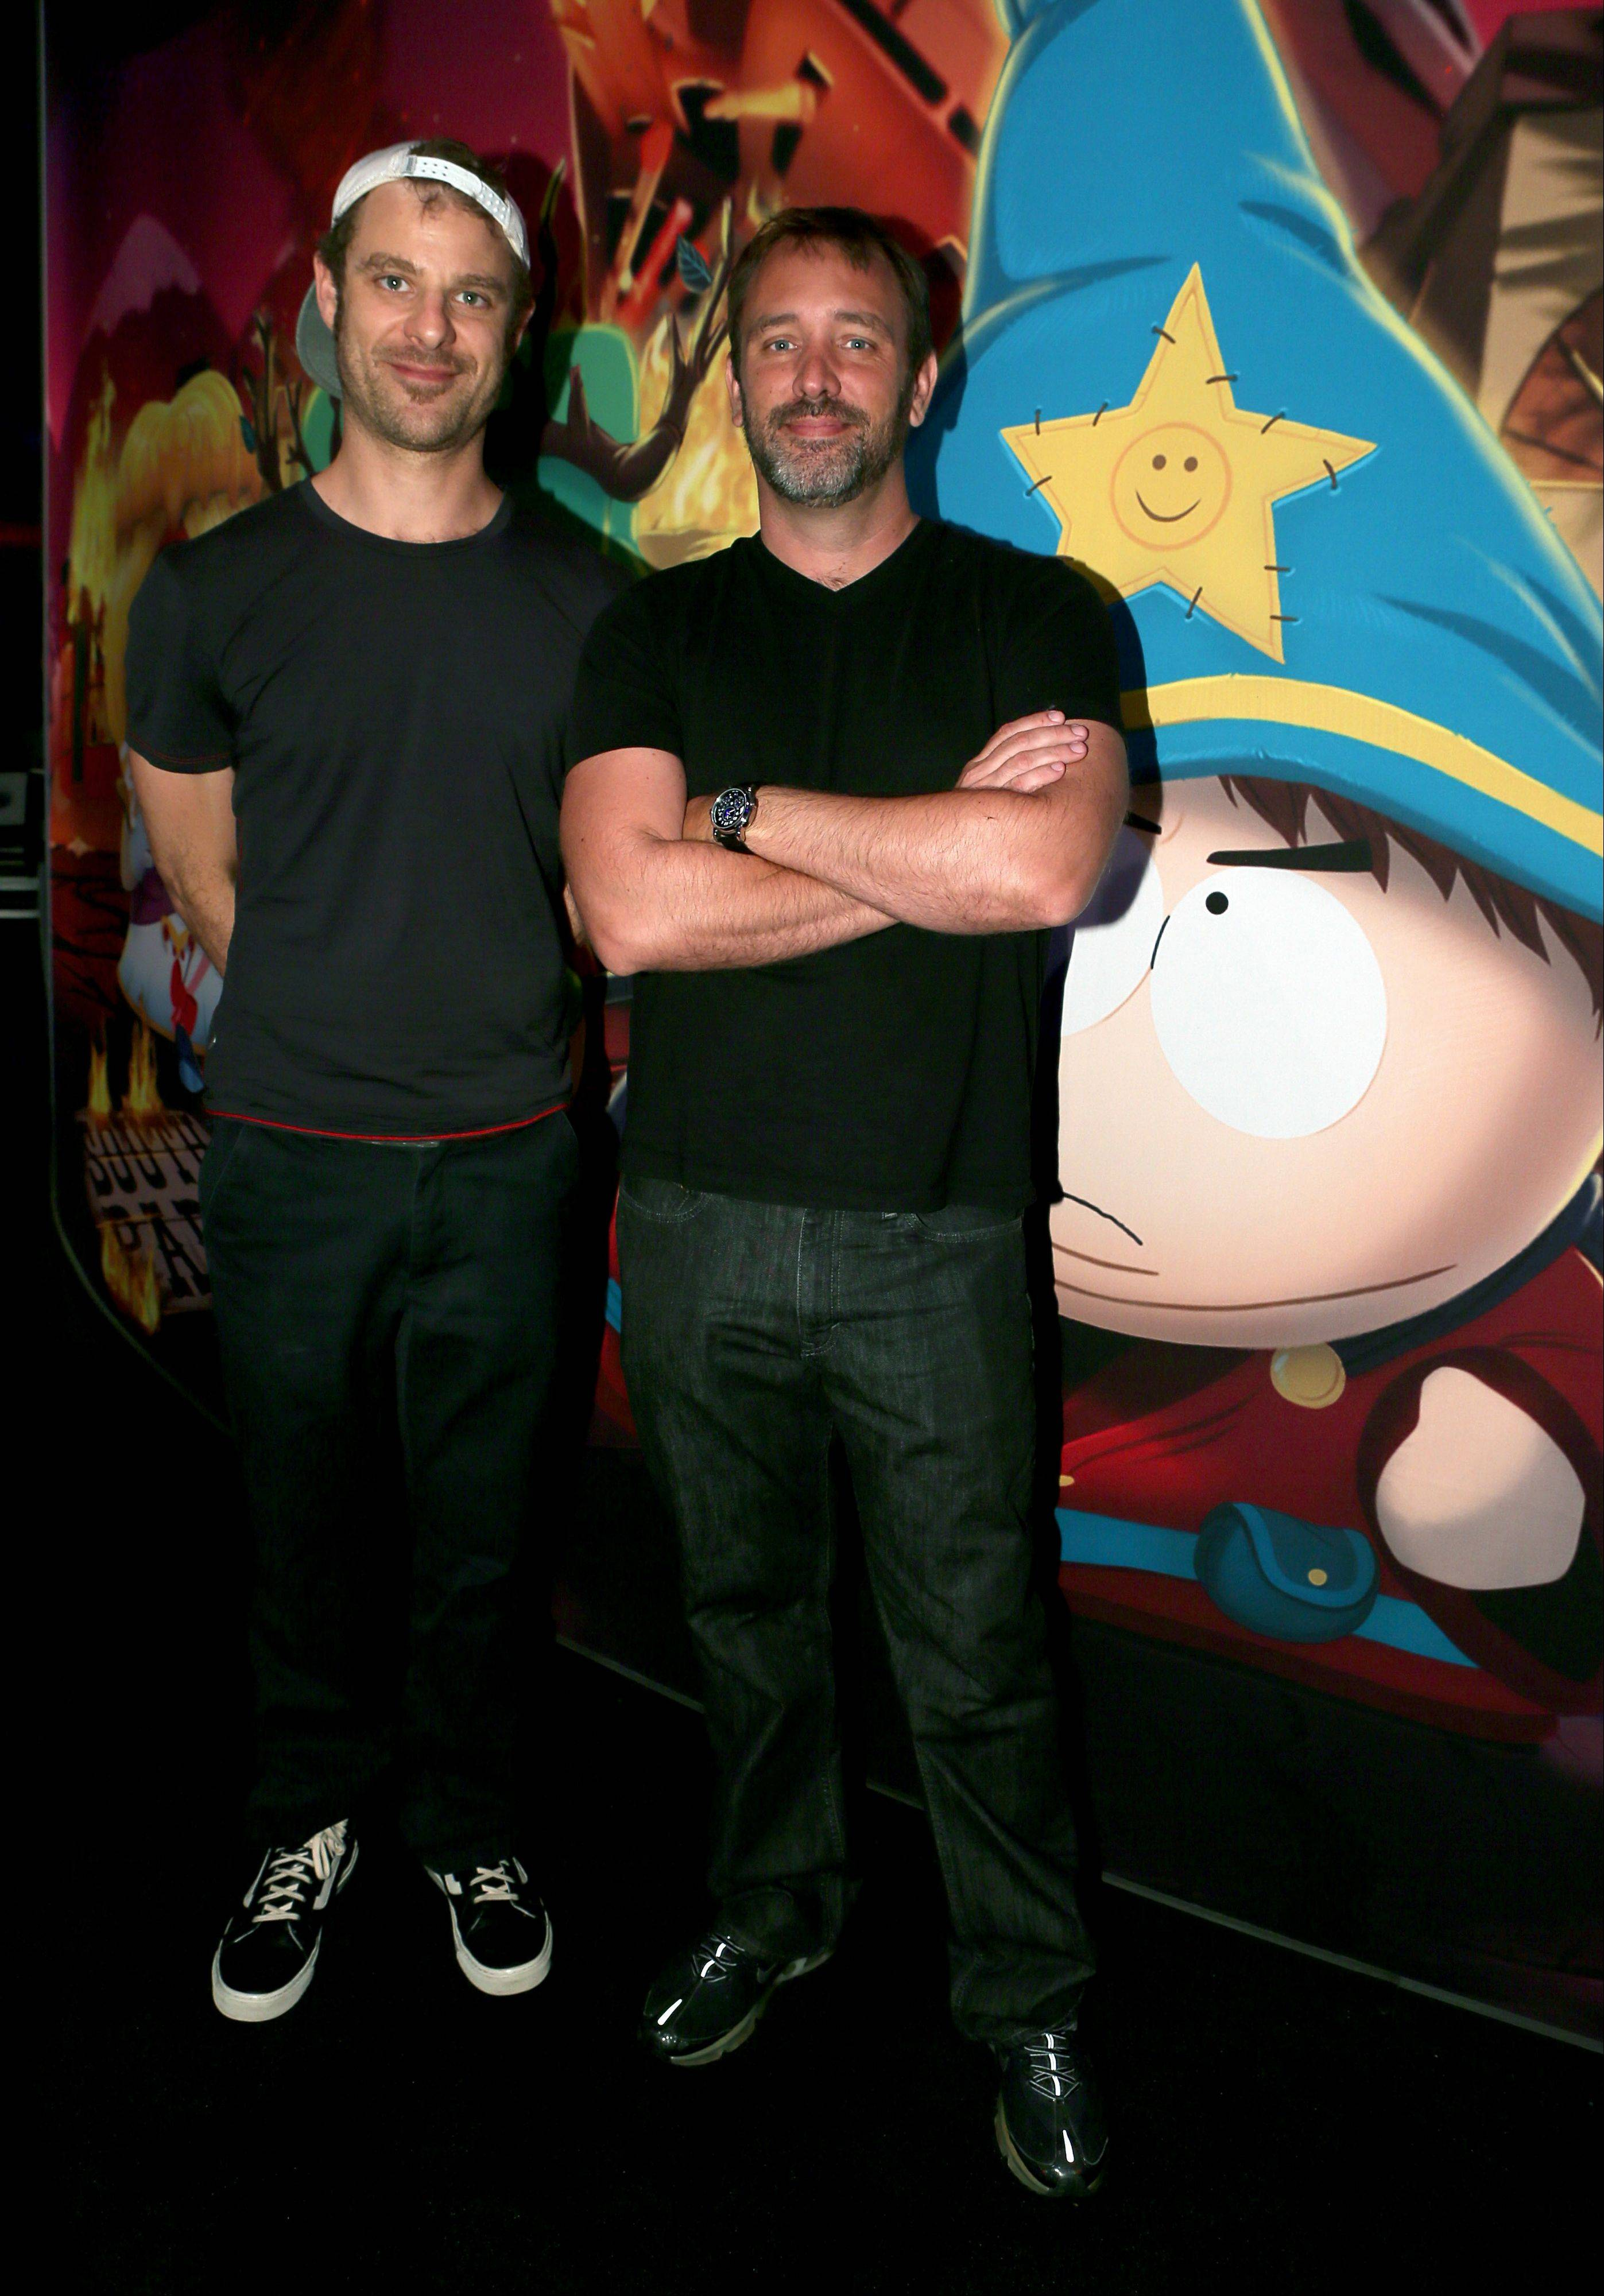 Matt Stone, left, and Trey Parker discuss �South Park: The Stick of Truth� at the Ubisoft booth at E3 in Los Angeles.